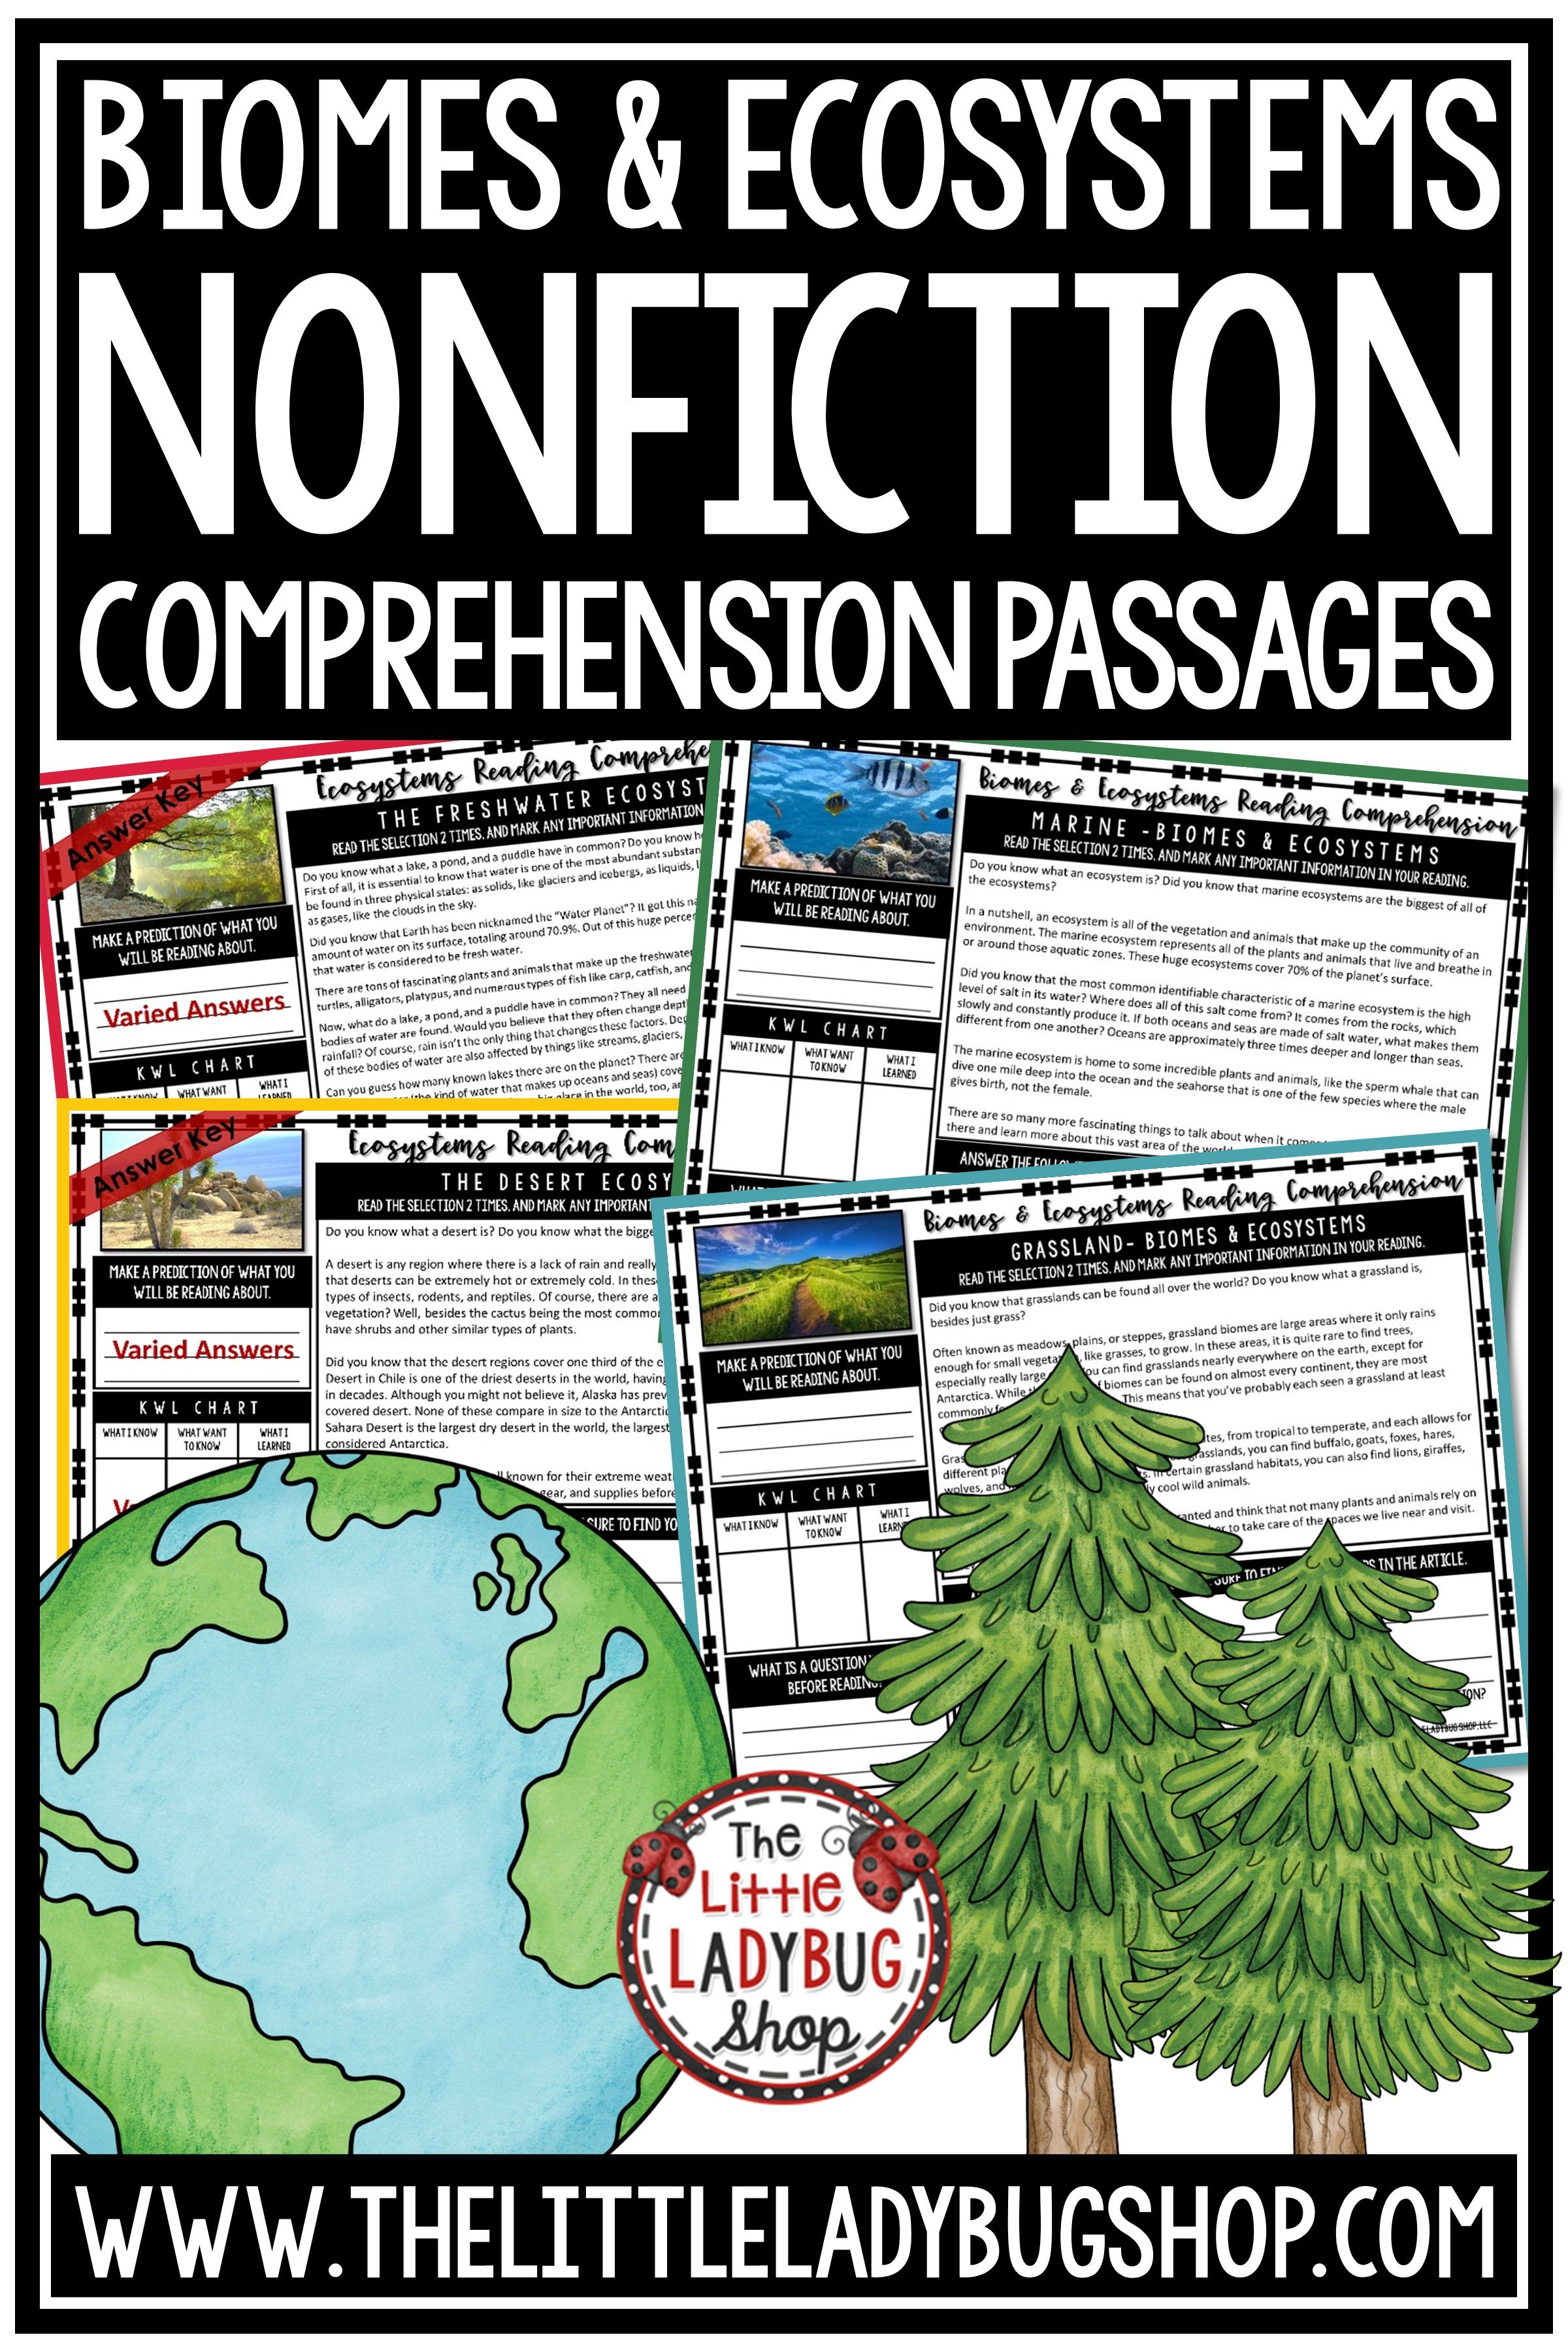 Biomes Ecosystems Reading Comprehension Passages And Questions 4th Grade Reading Comprehension Passages Reading Comprehension Reading Passages [ 3600 x 2400 Pixel ]